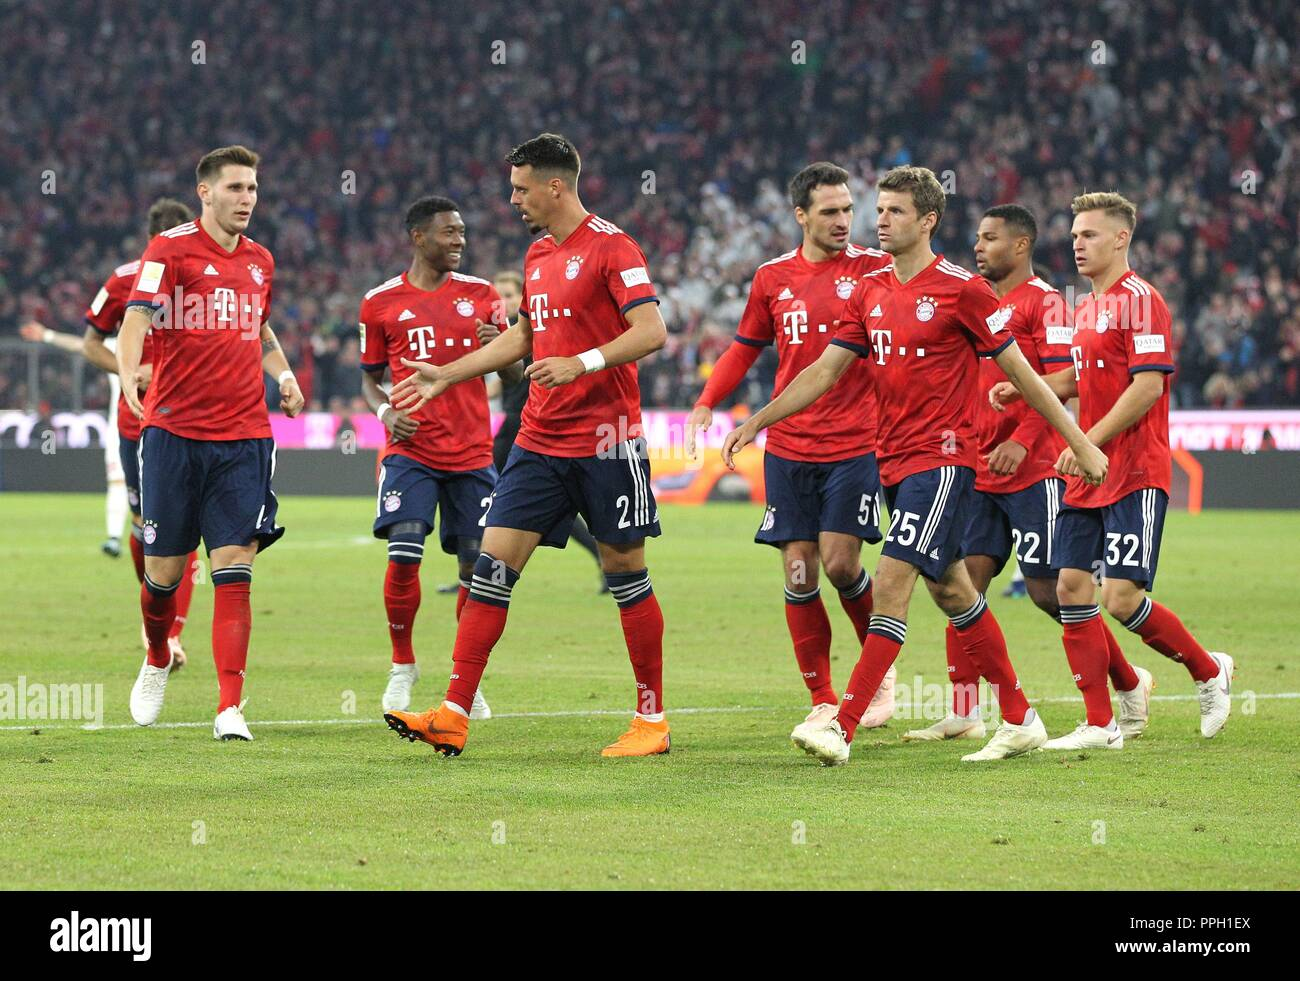 firo: 25.09.2018 Fuvuball, Football: 1.Bundesliga FC Bayern Munich - FC Augsburg, FC Bayern, Munich, Munich, jubilation, whole figures | usage worldwide Stock Photo